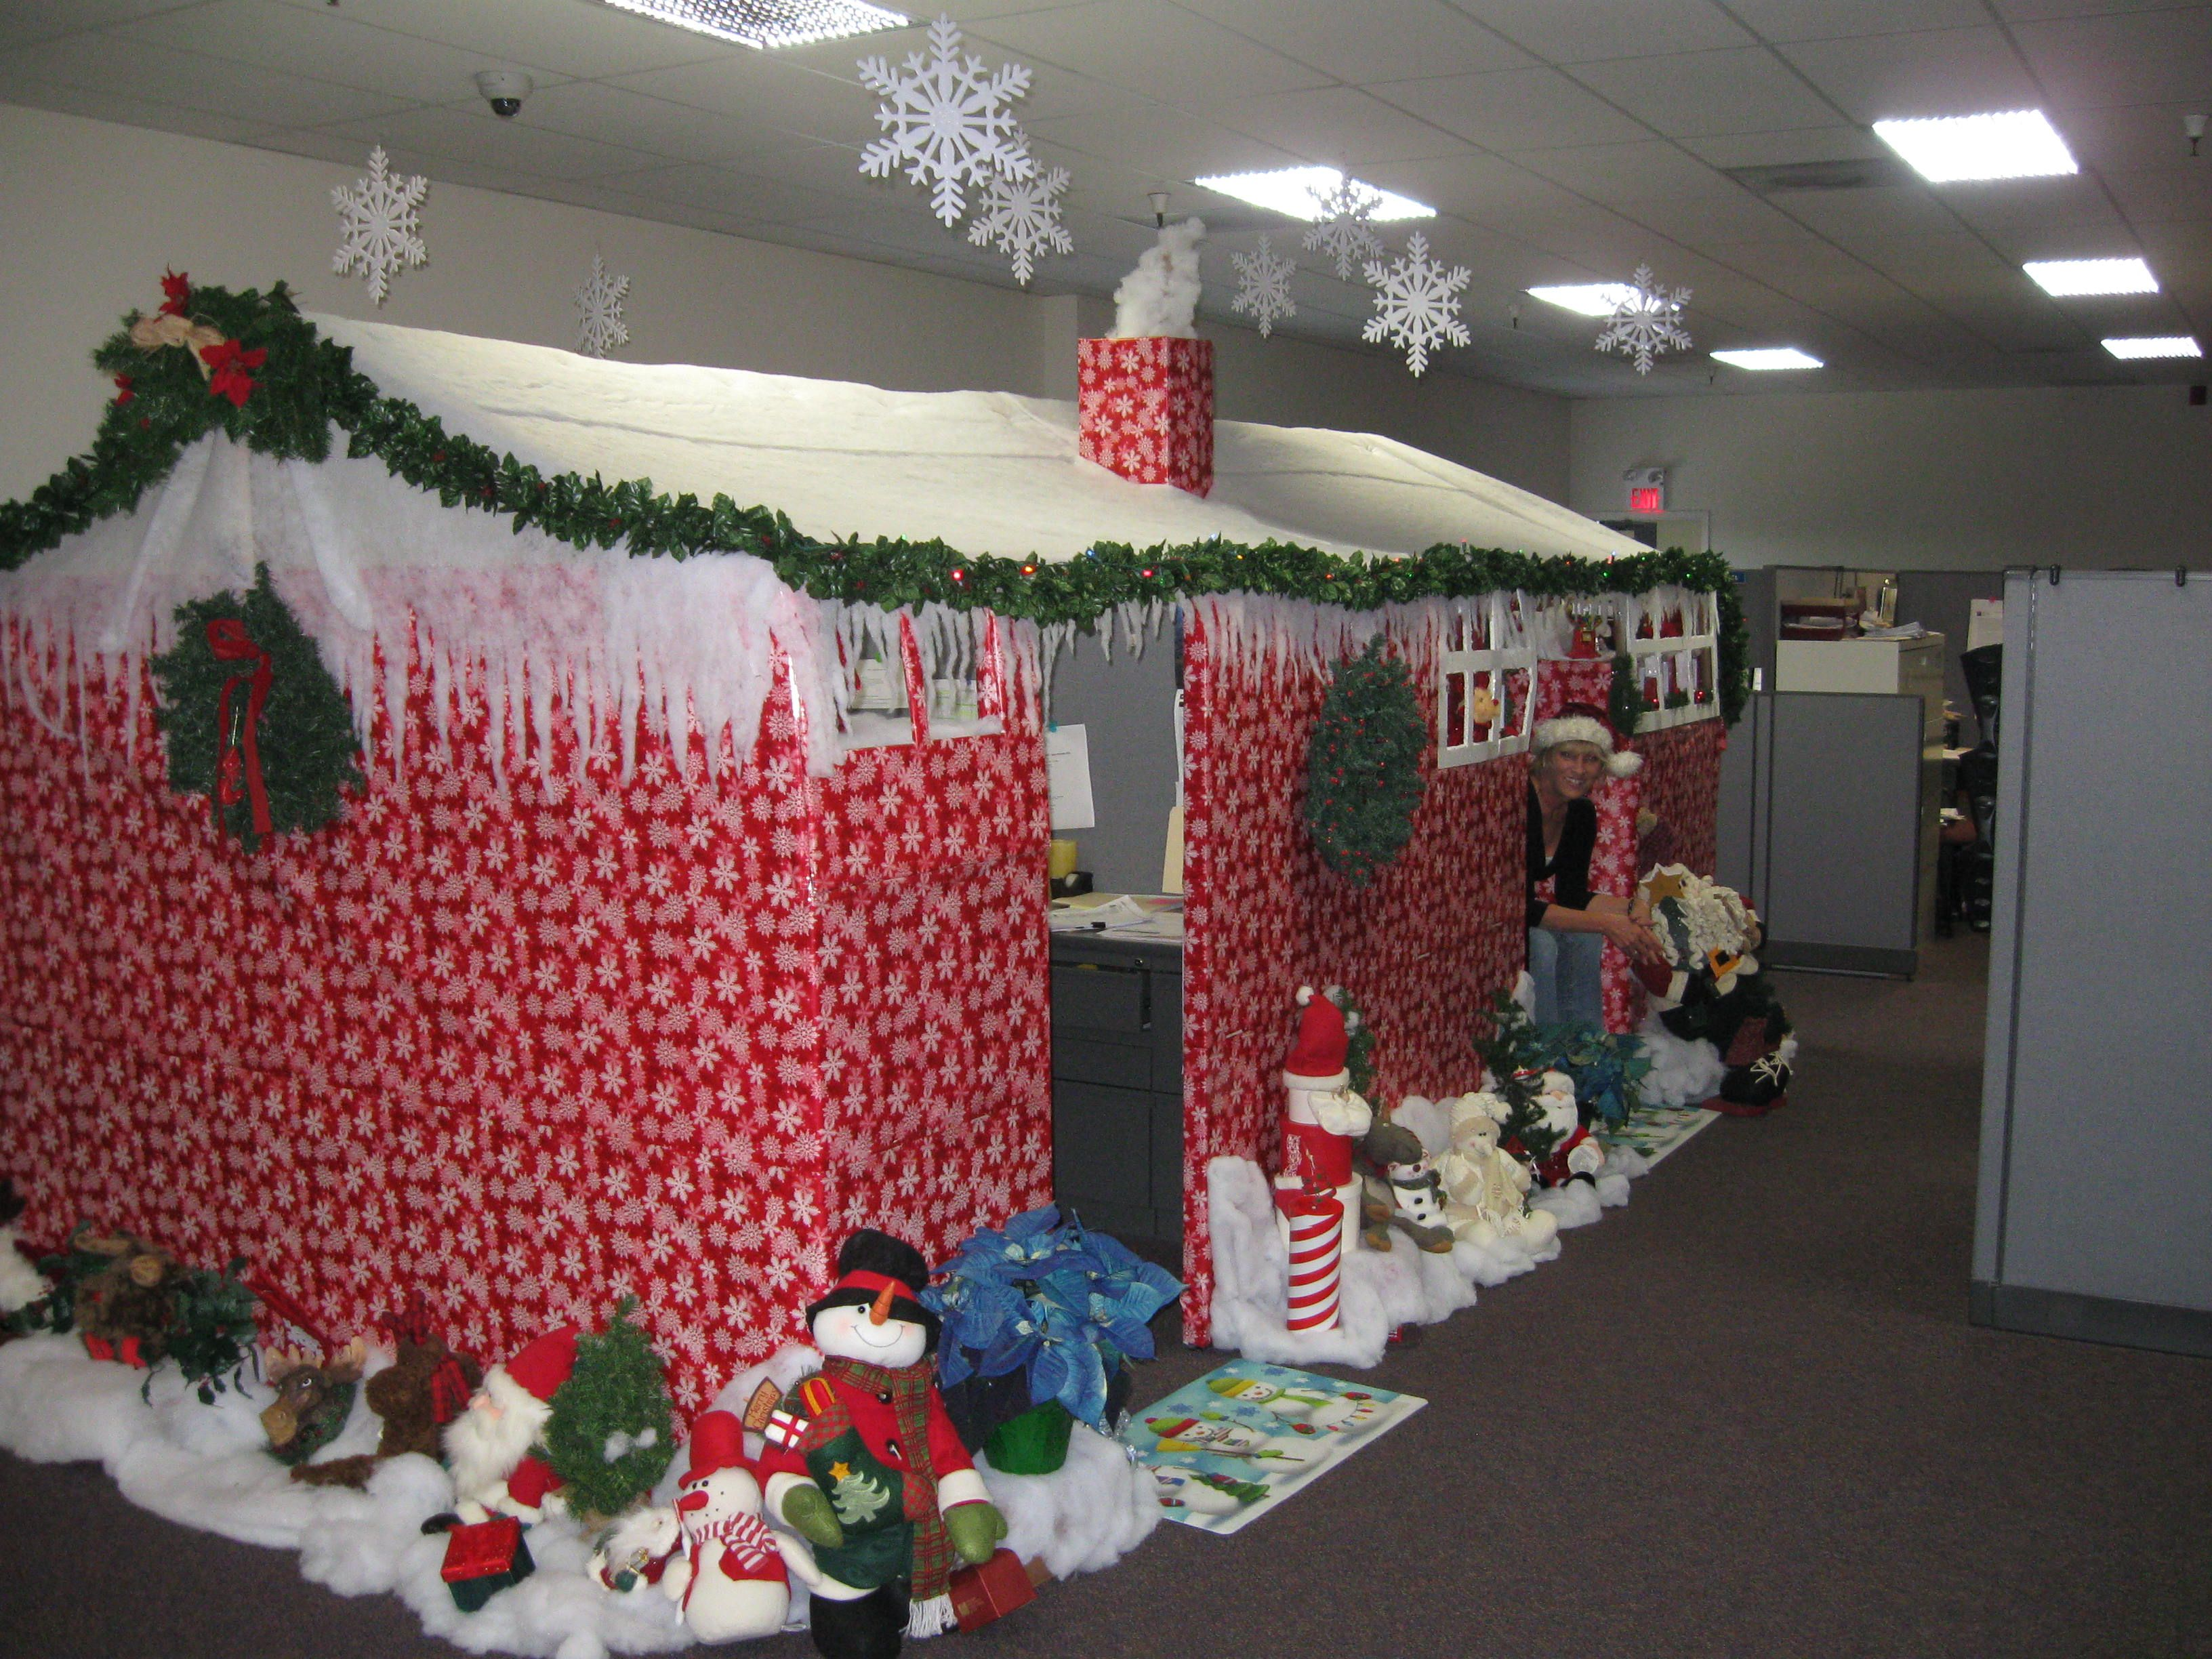 2 cubicles at work decorated for christmas